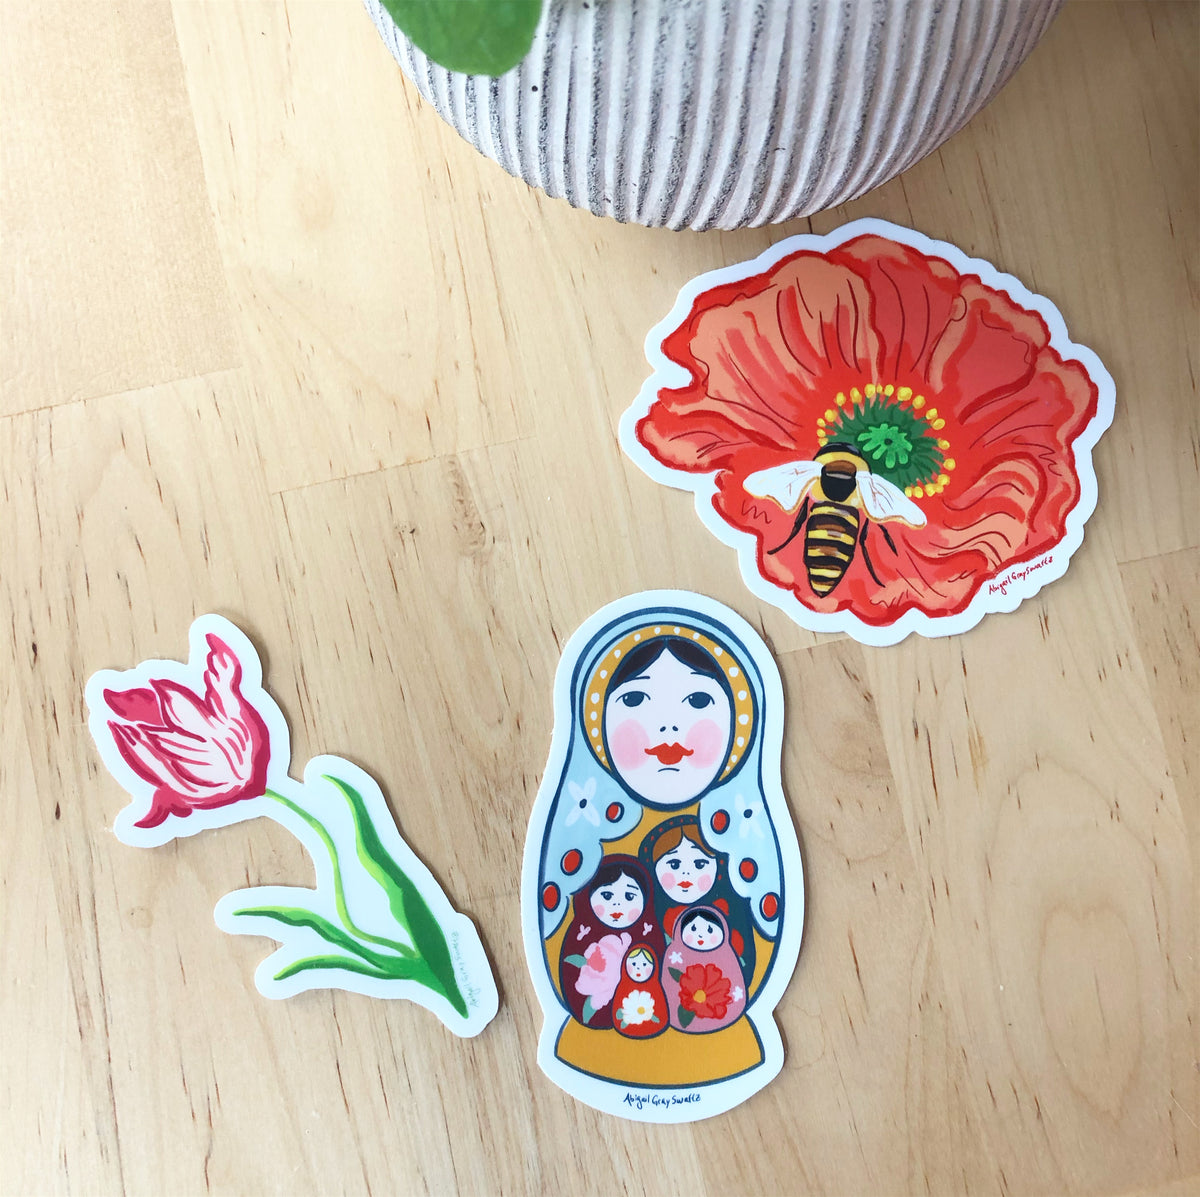 Nesting Doll Sticker, sisterhood and mothers day gift idea STICKER - Stickers & Magnets